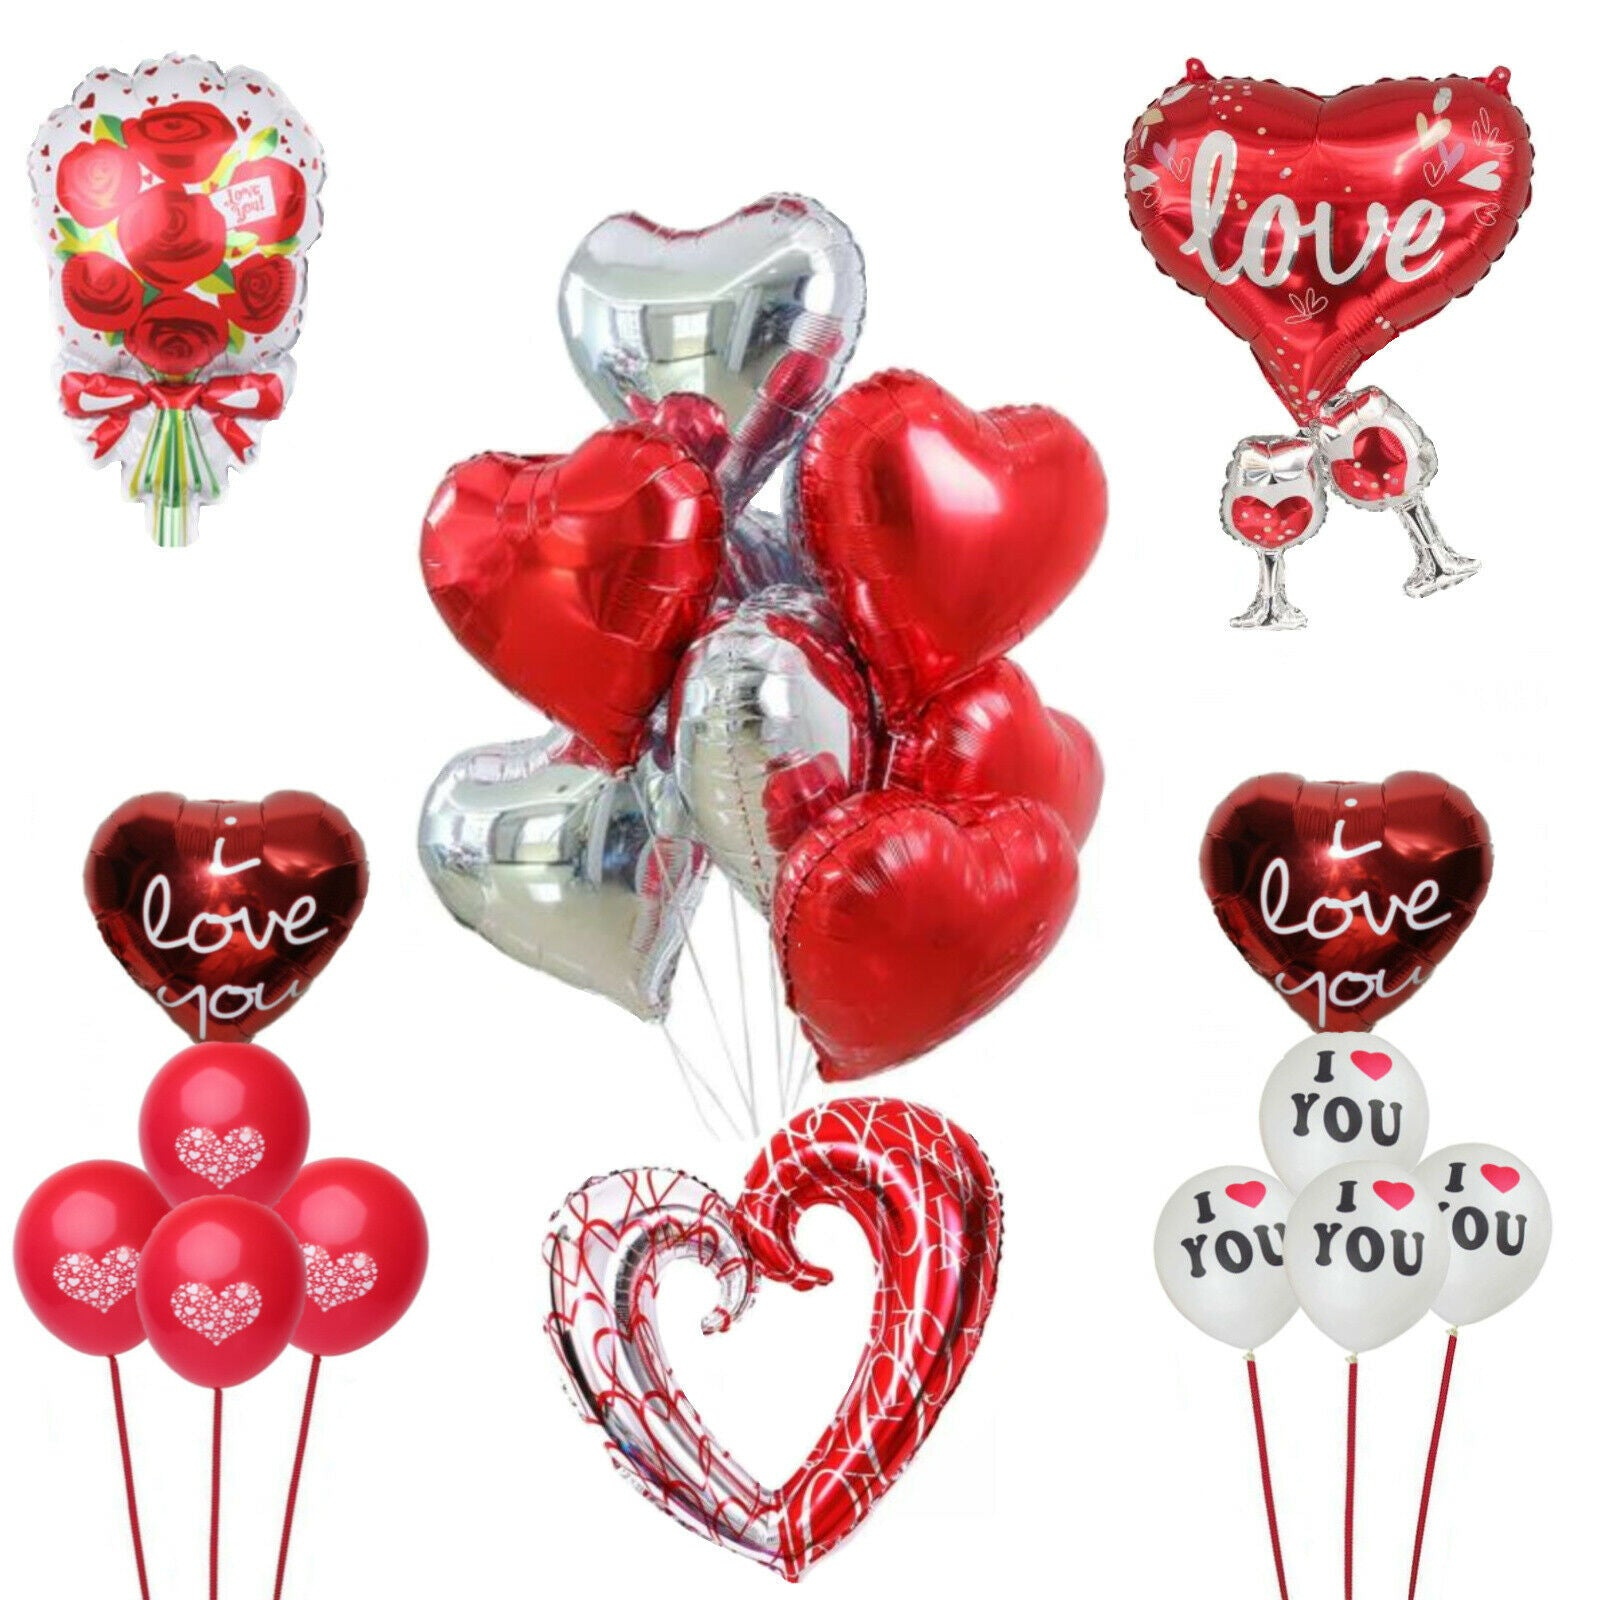 Love Heart Balloon Sets & I Love You Balloons